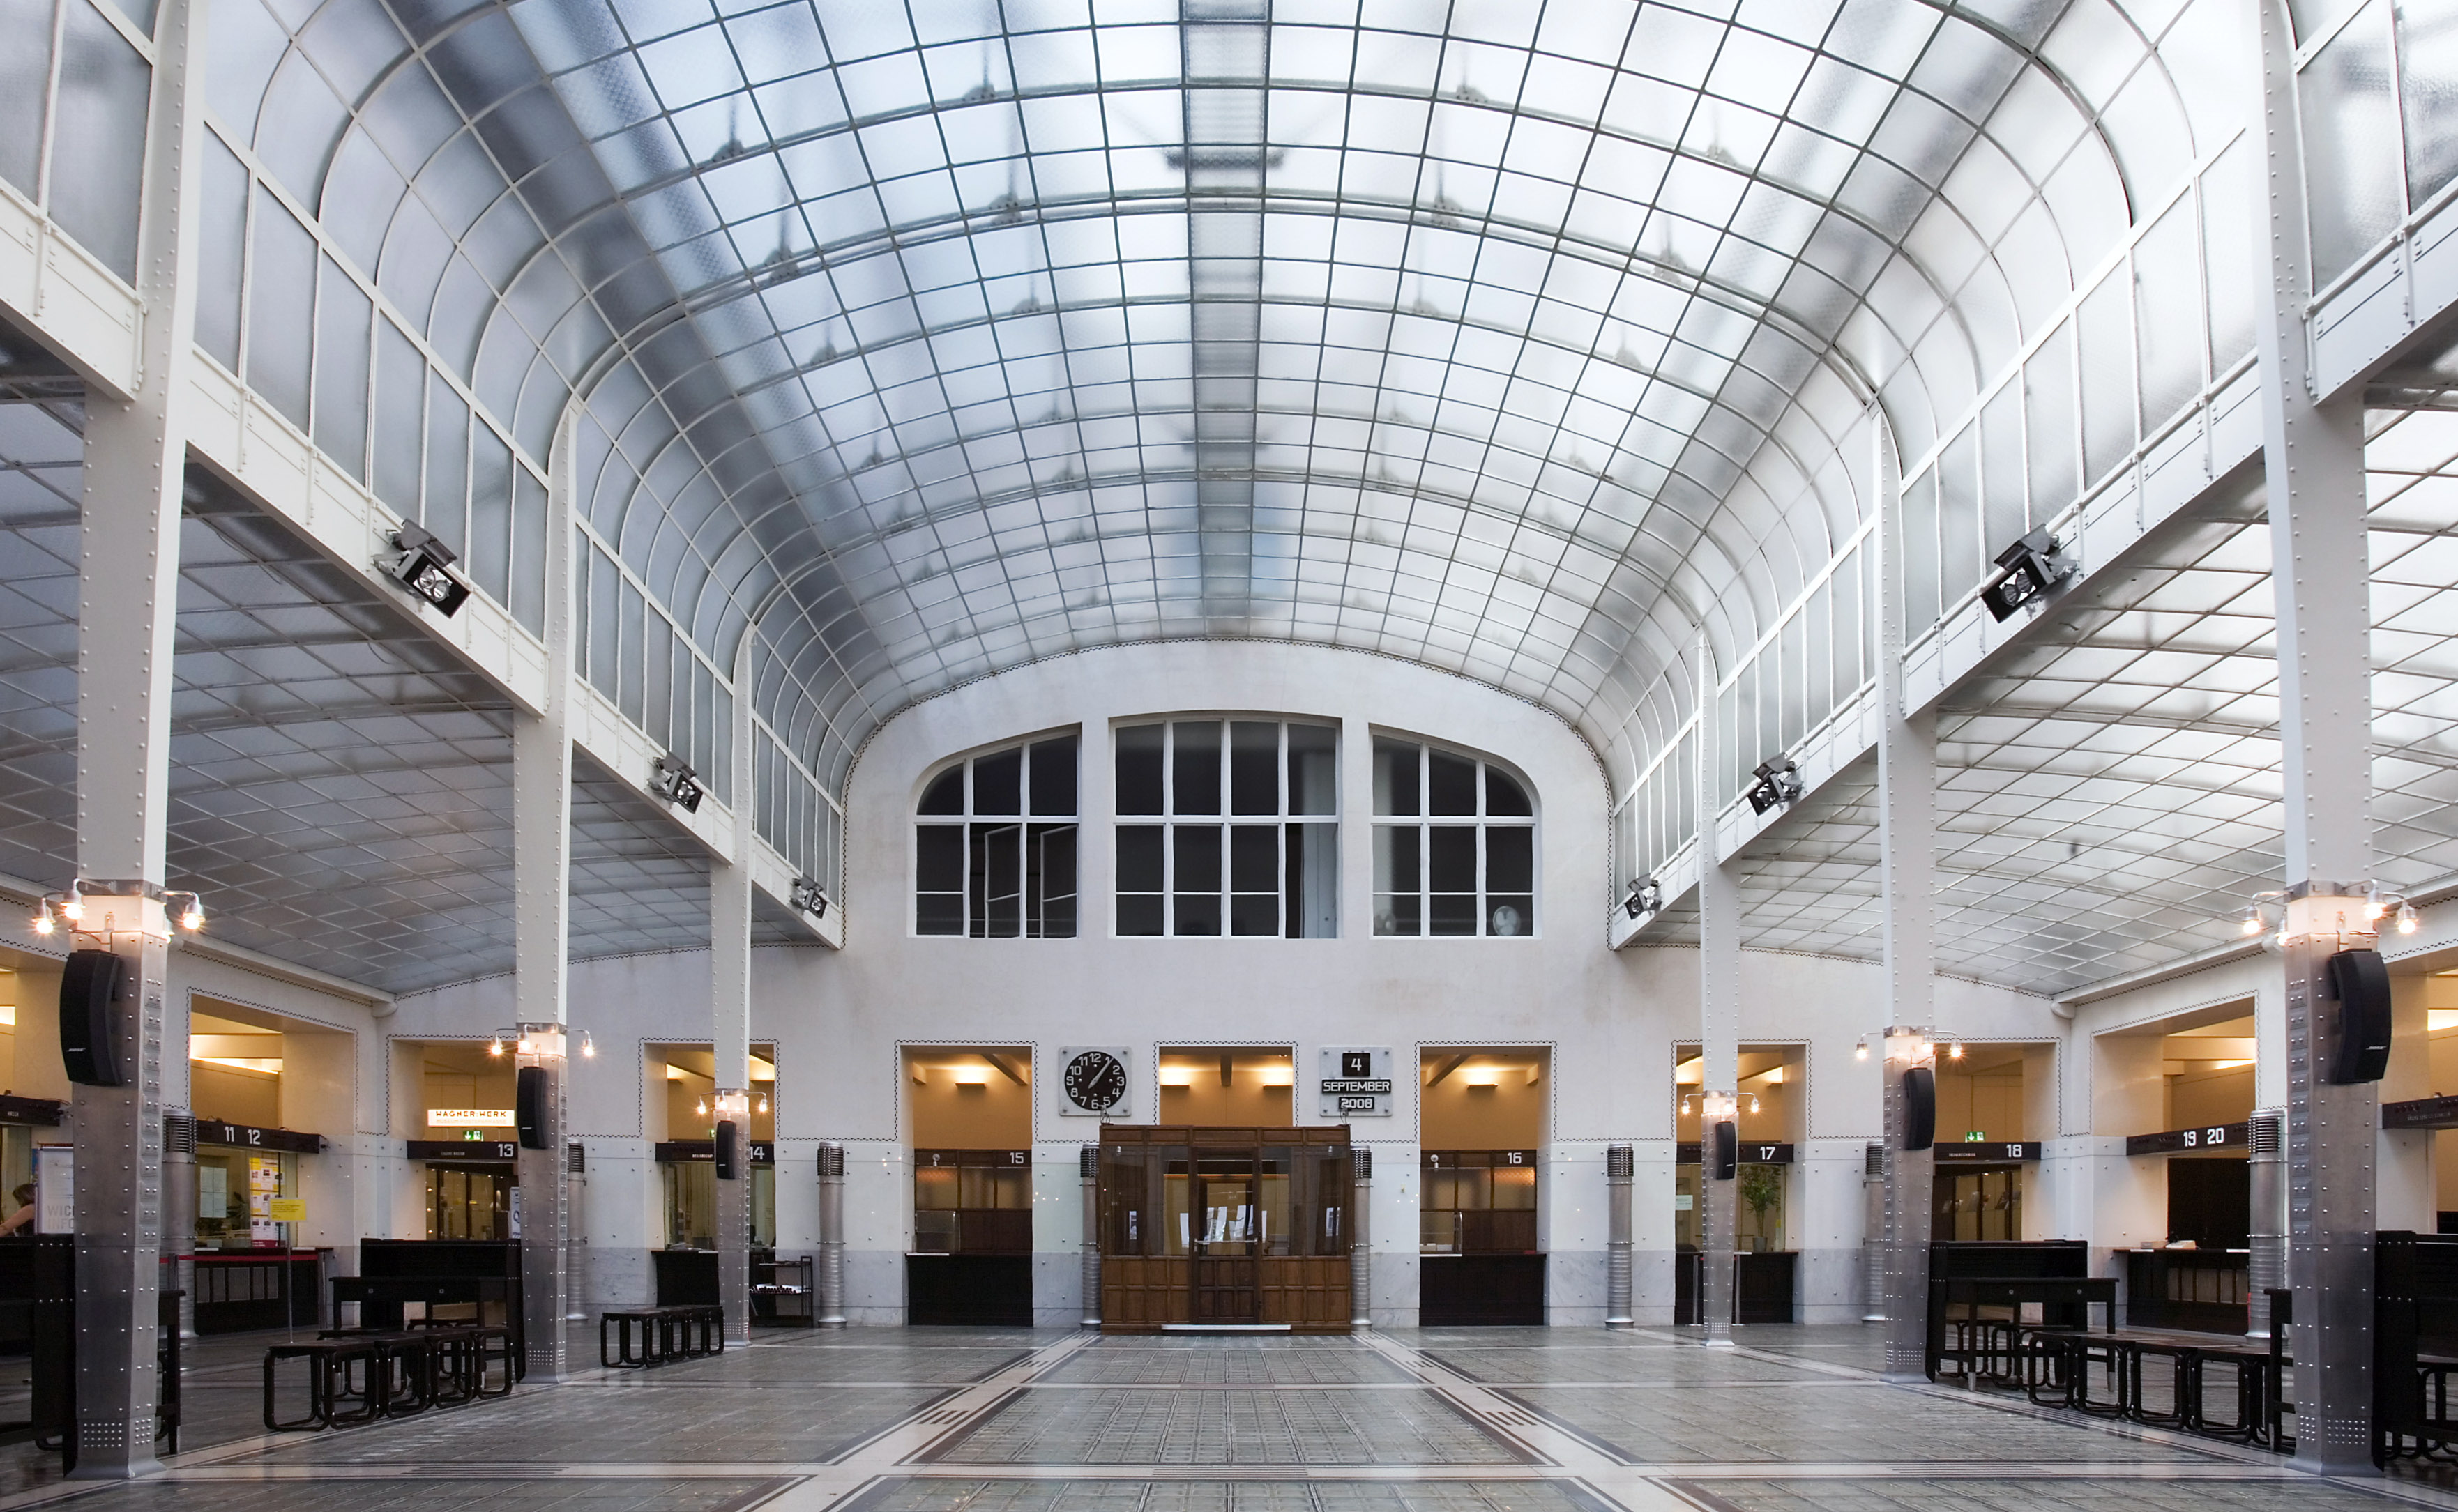 Otto Wagner, Bank hall, Postal Savings Bank, Vienna, 1904-06 and 1910-12 (photo: Jorge Royan, CC BY-SA 3.0)